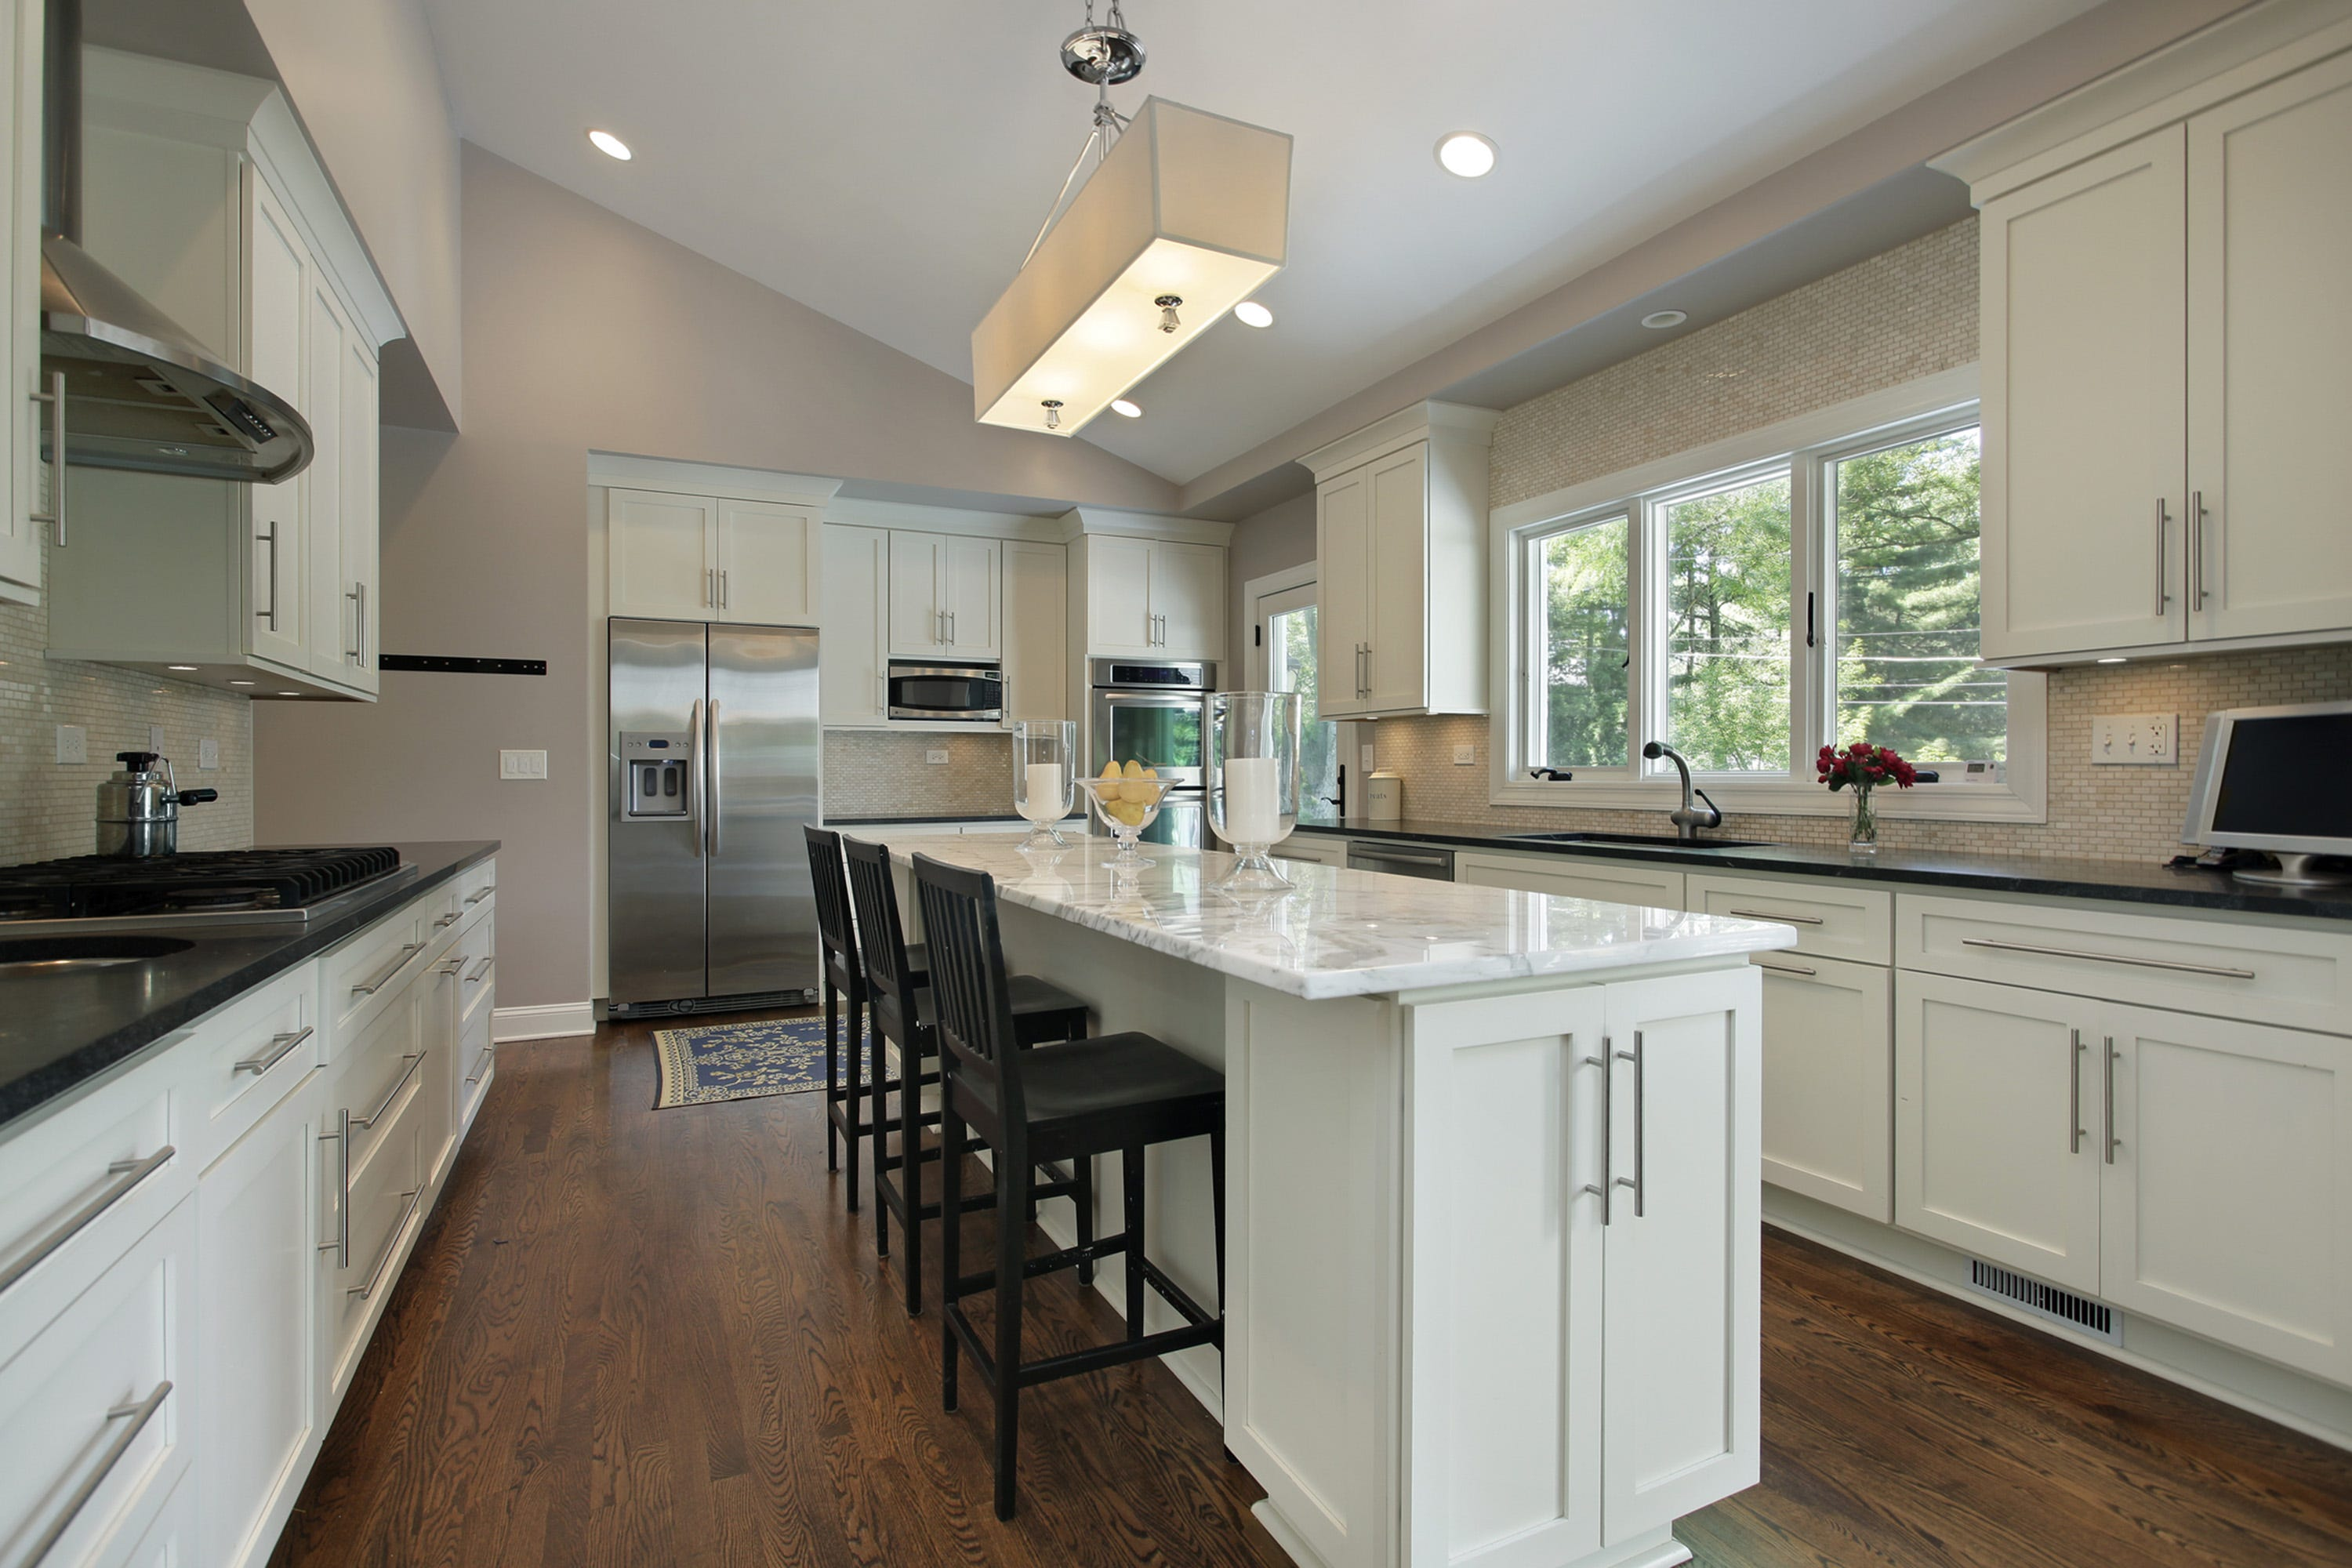 Advisor No Matter The Budget Improvements To Your Kitchen Can Be Made